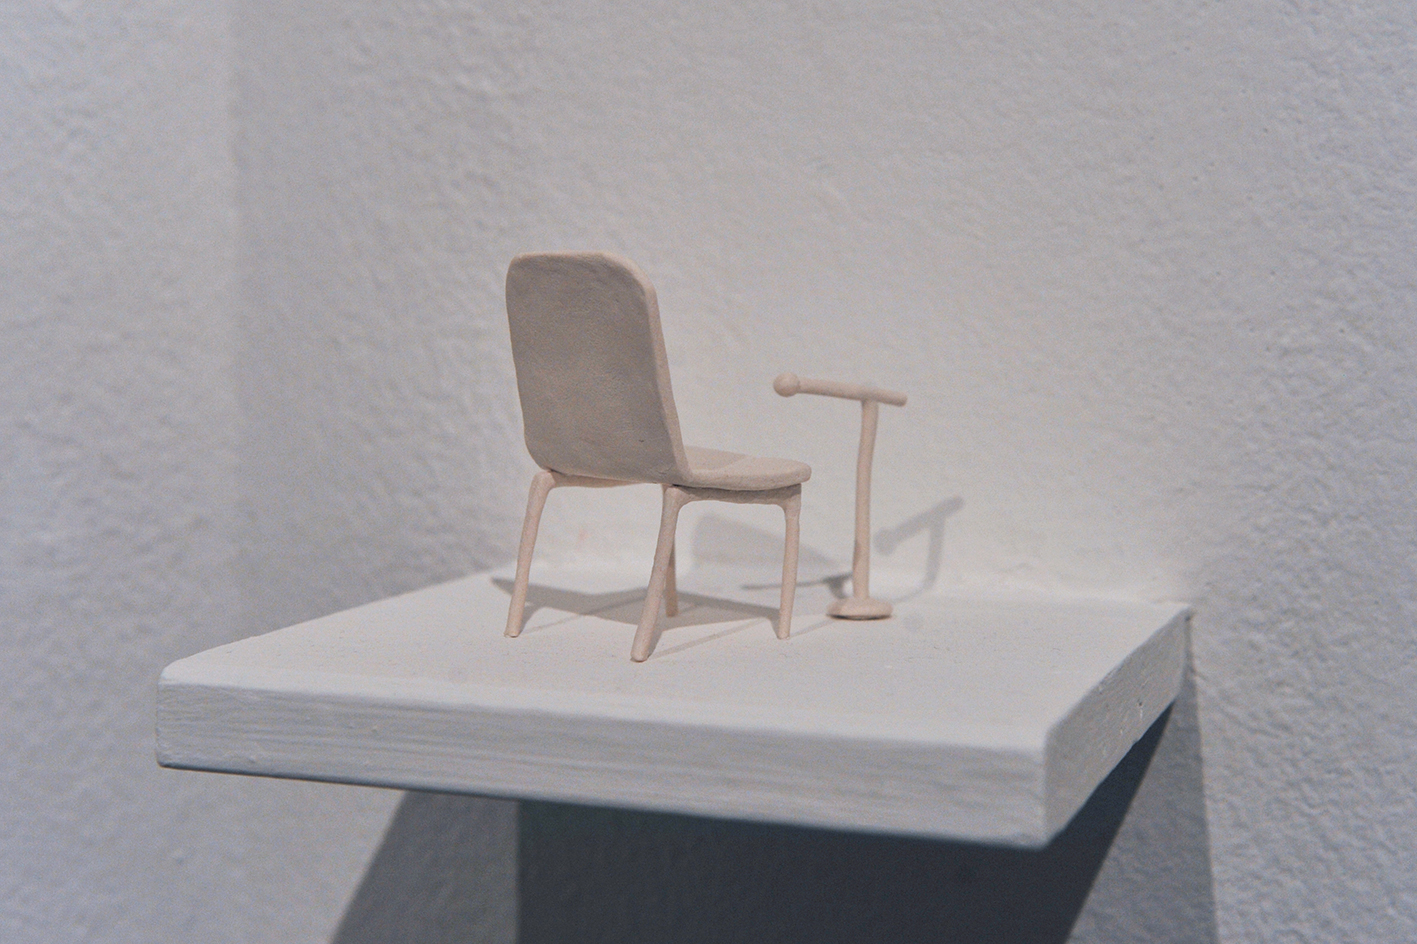 Installation view Series of porcelain sculptures depicting MDR's childhood memories related to the Maxi Trial time